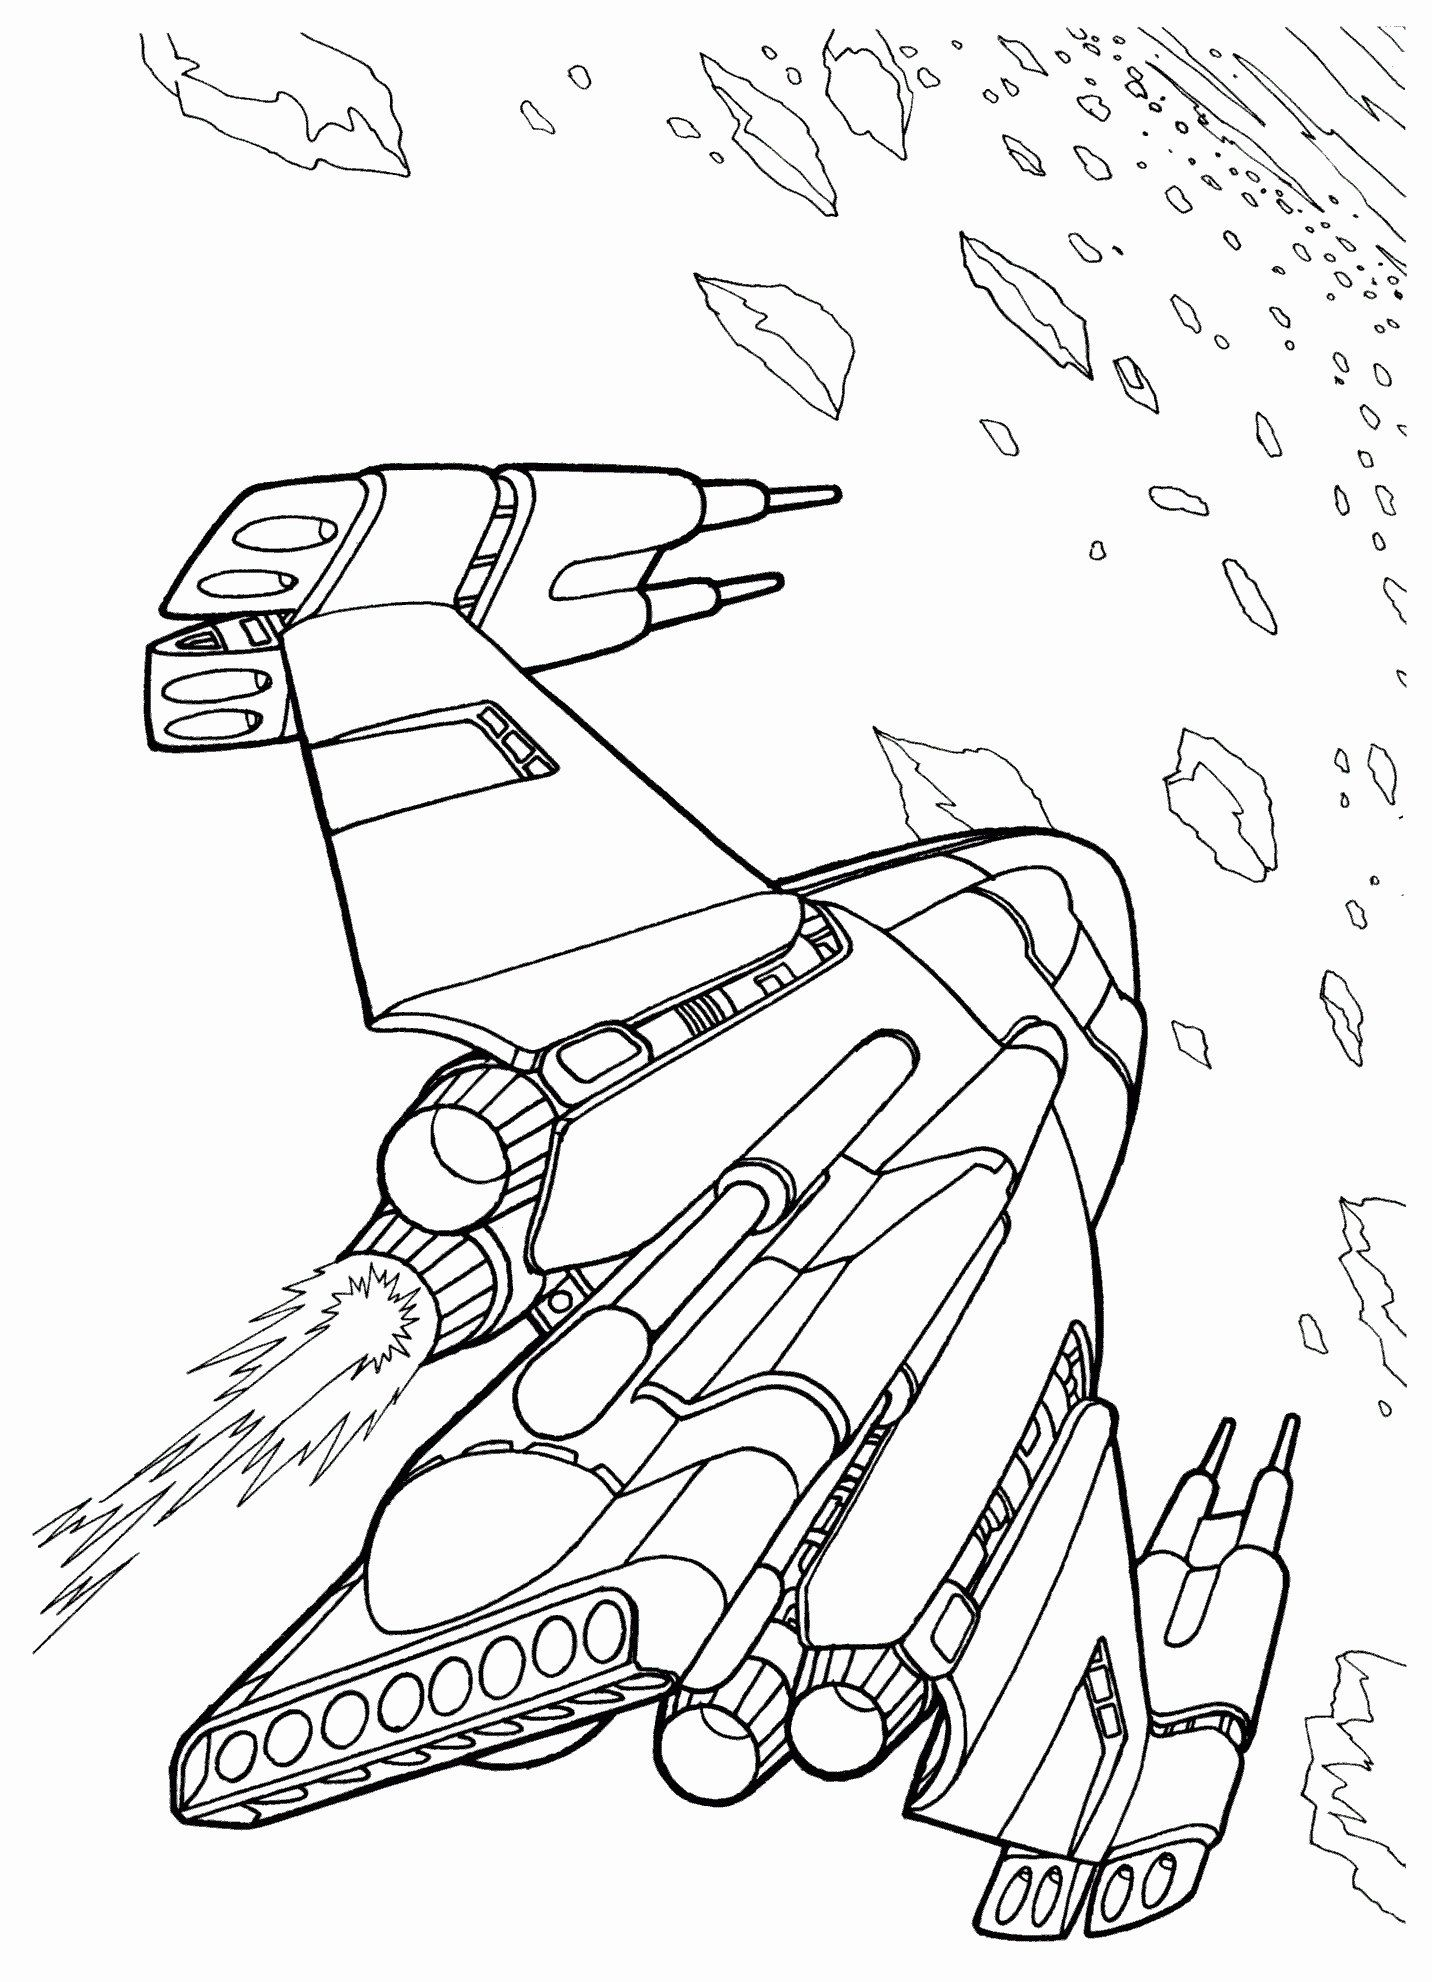 Darth Vader Lego Coloring Pages Lovely 46 Luxury Darth Vader To Print Lego Coloring Pages Coloring Pages Lego Coloring